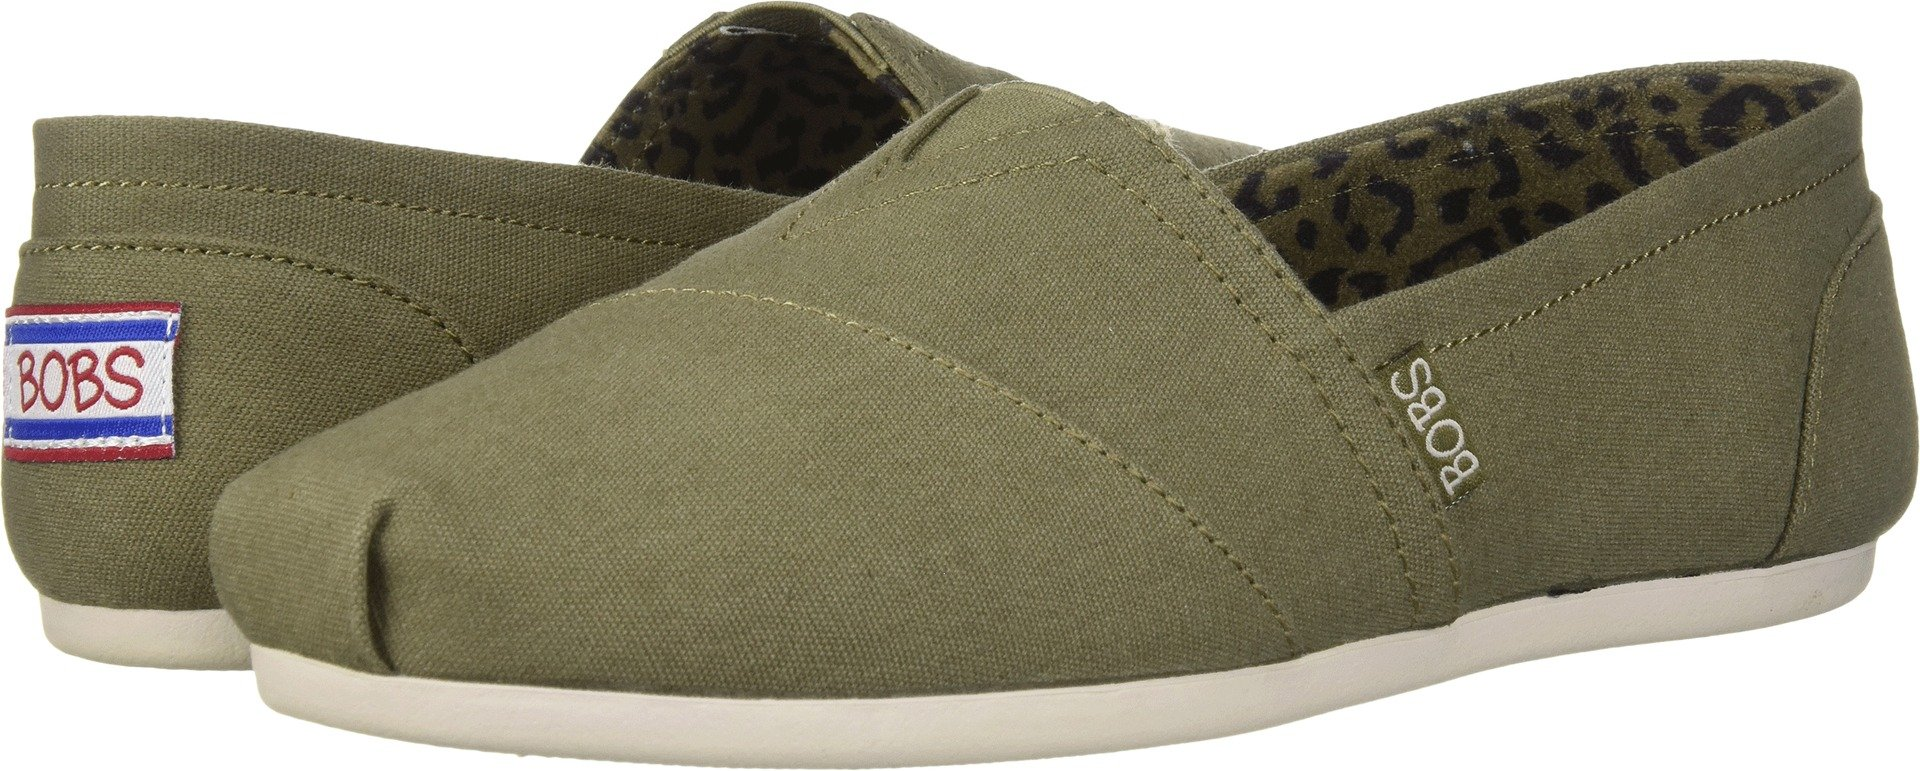 Skechers BOBS Women's Bobs Plush-Peace and Love Sneaker, Olive, 6.5 M US